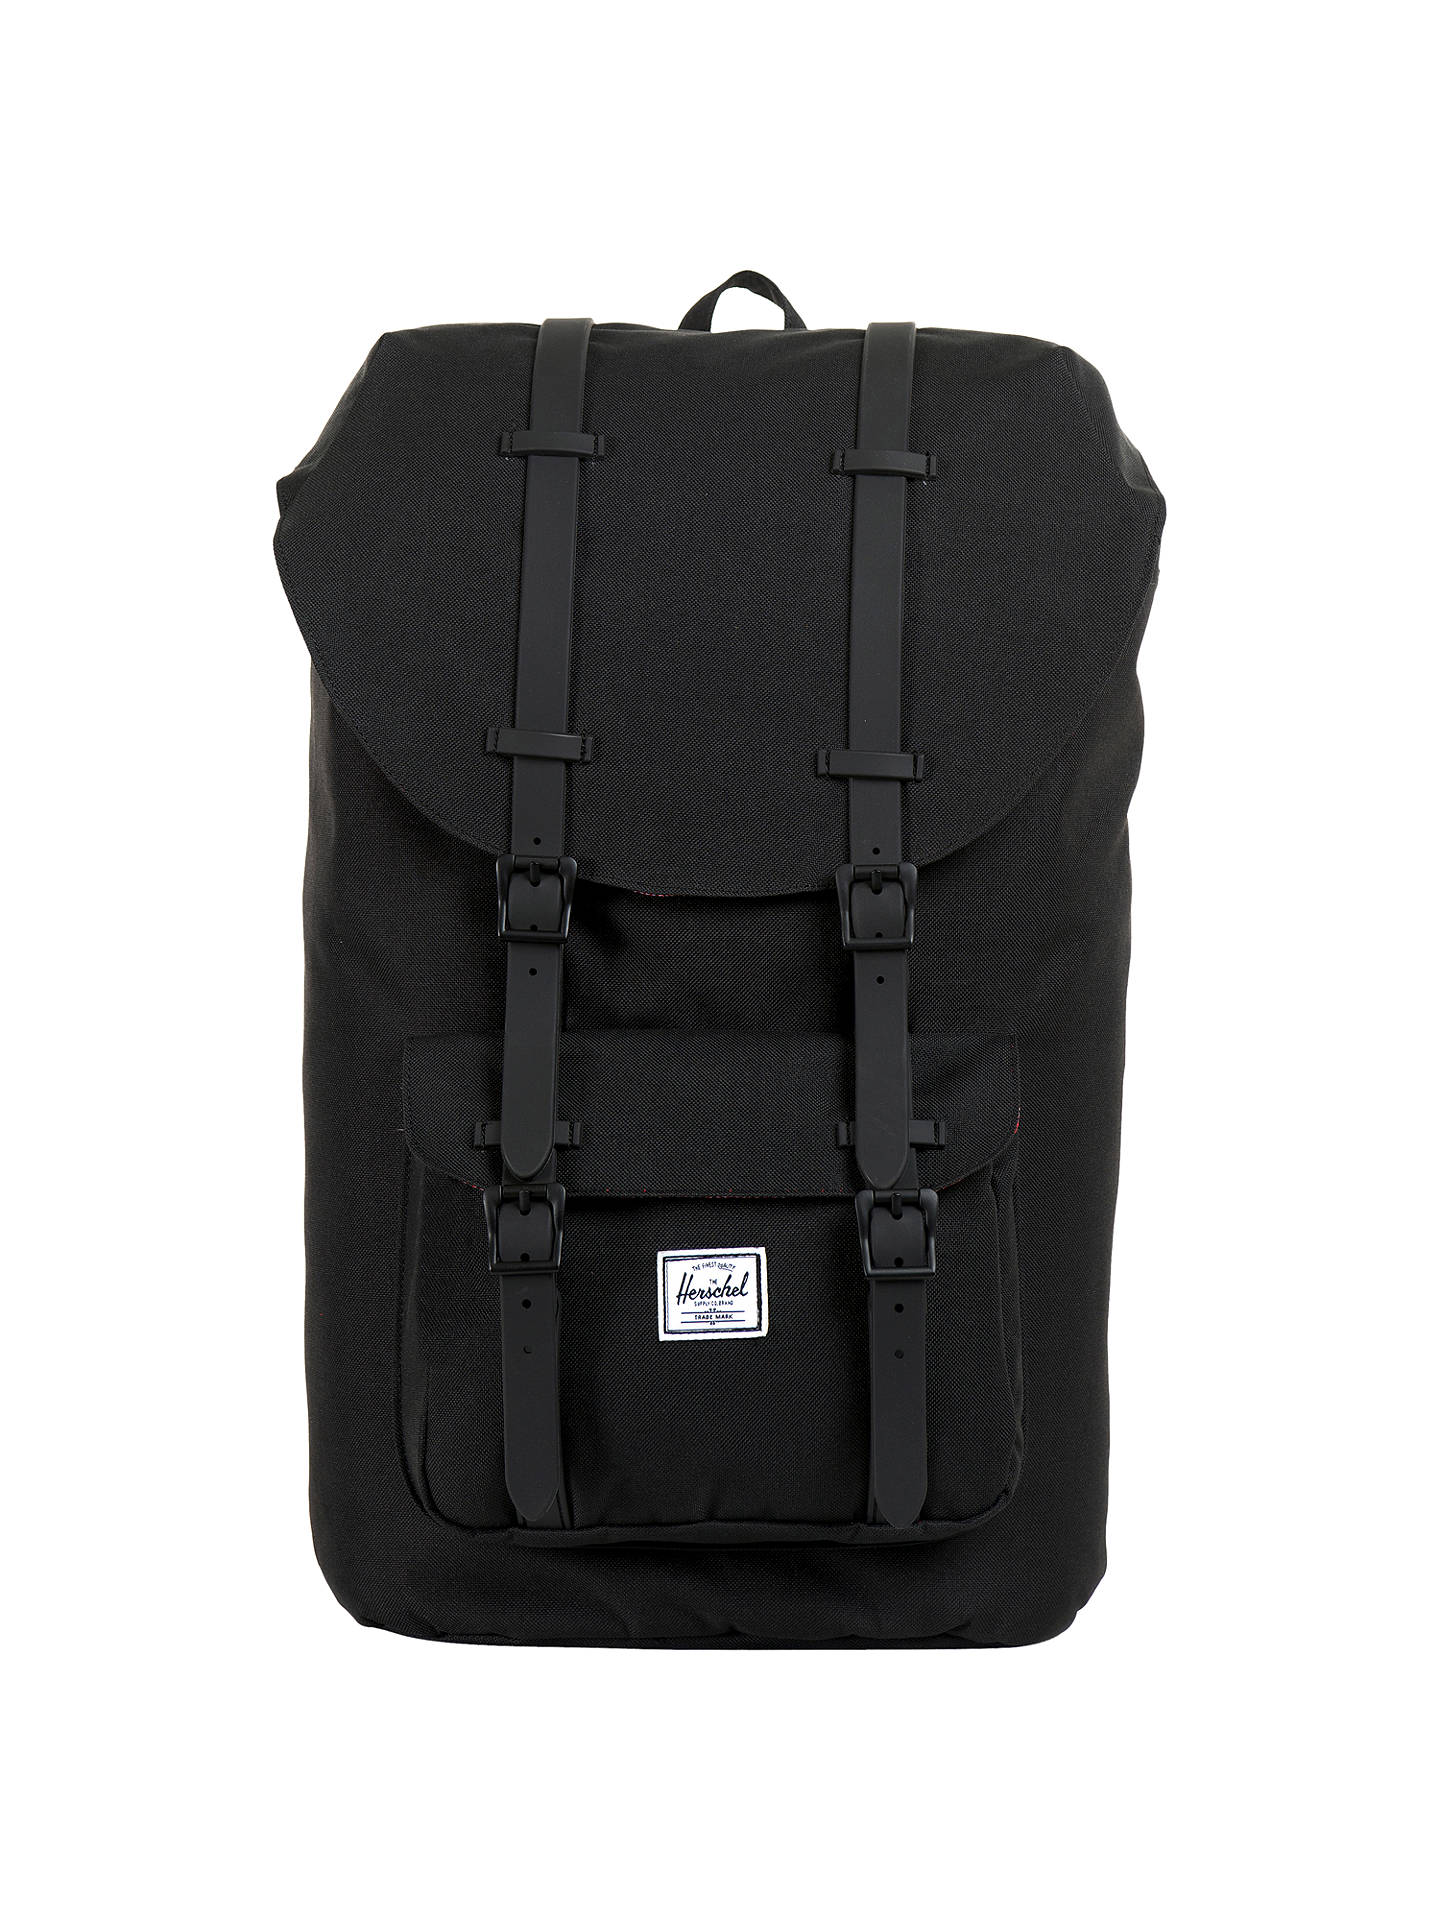 84c5670f30c Herschel Supply Co. Little America Backpack at John Lewis   Partners